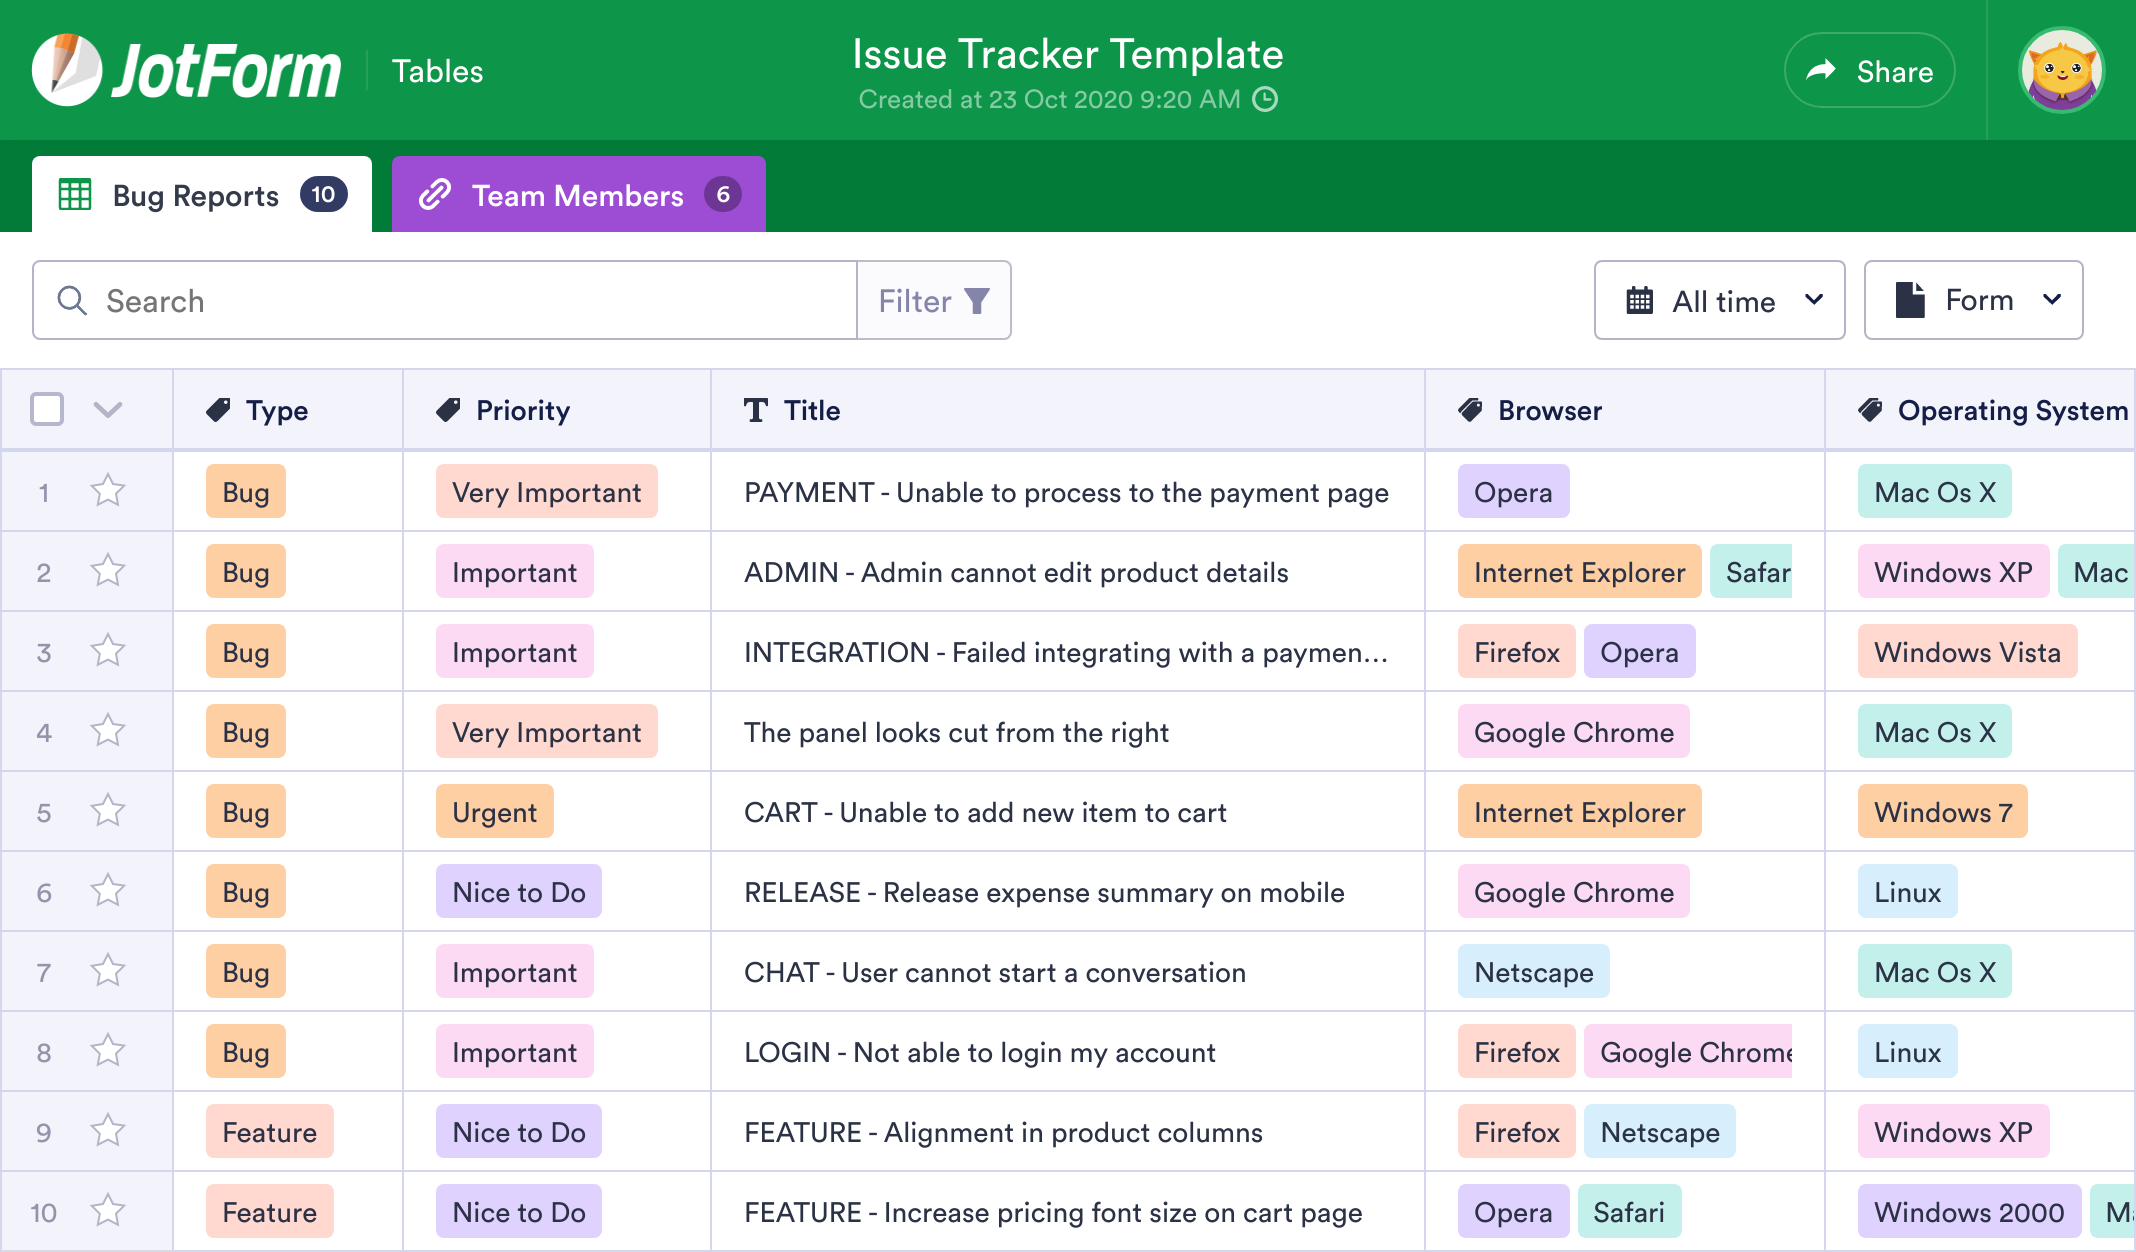 Issue Tracker Template